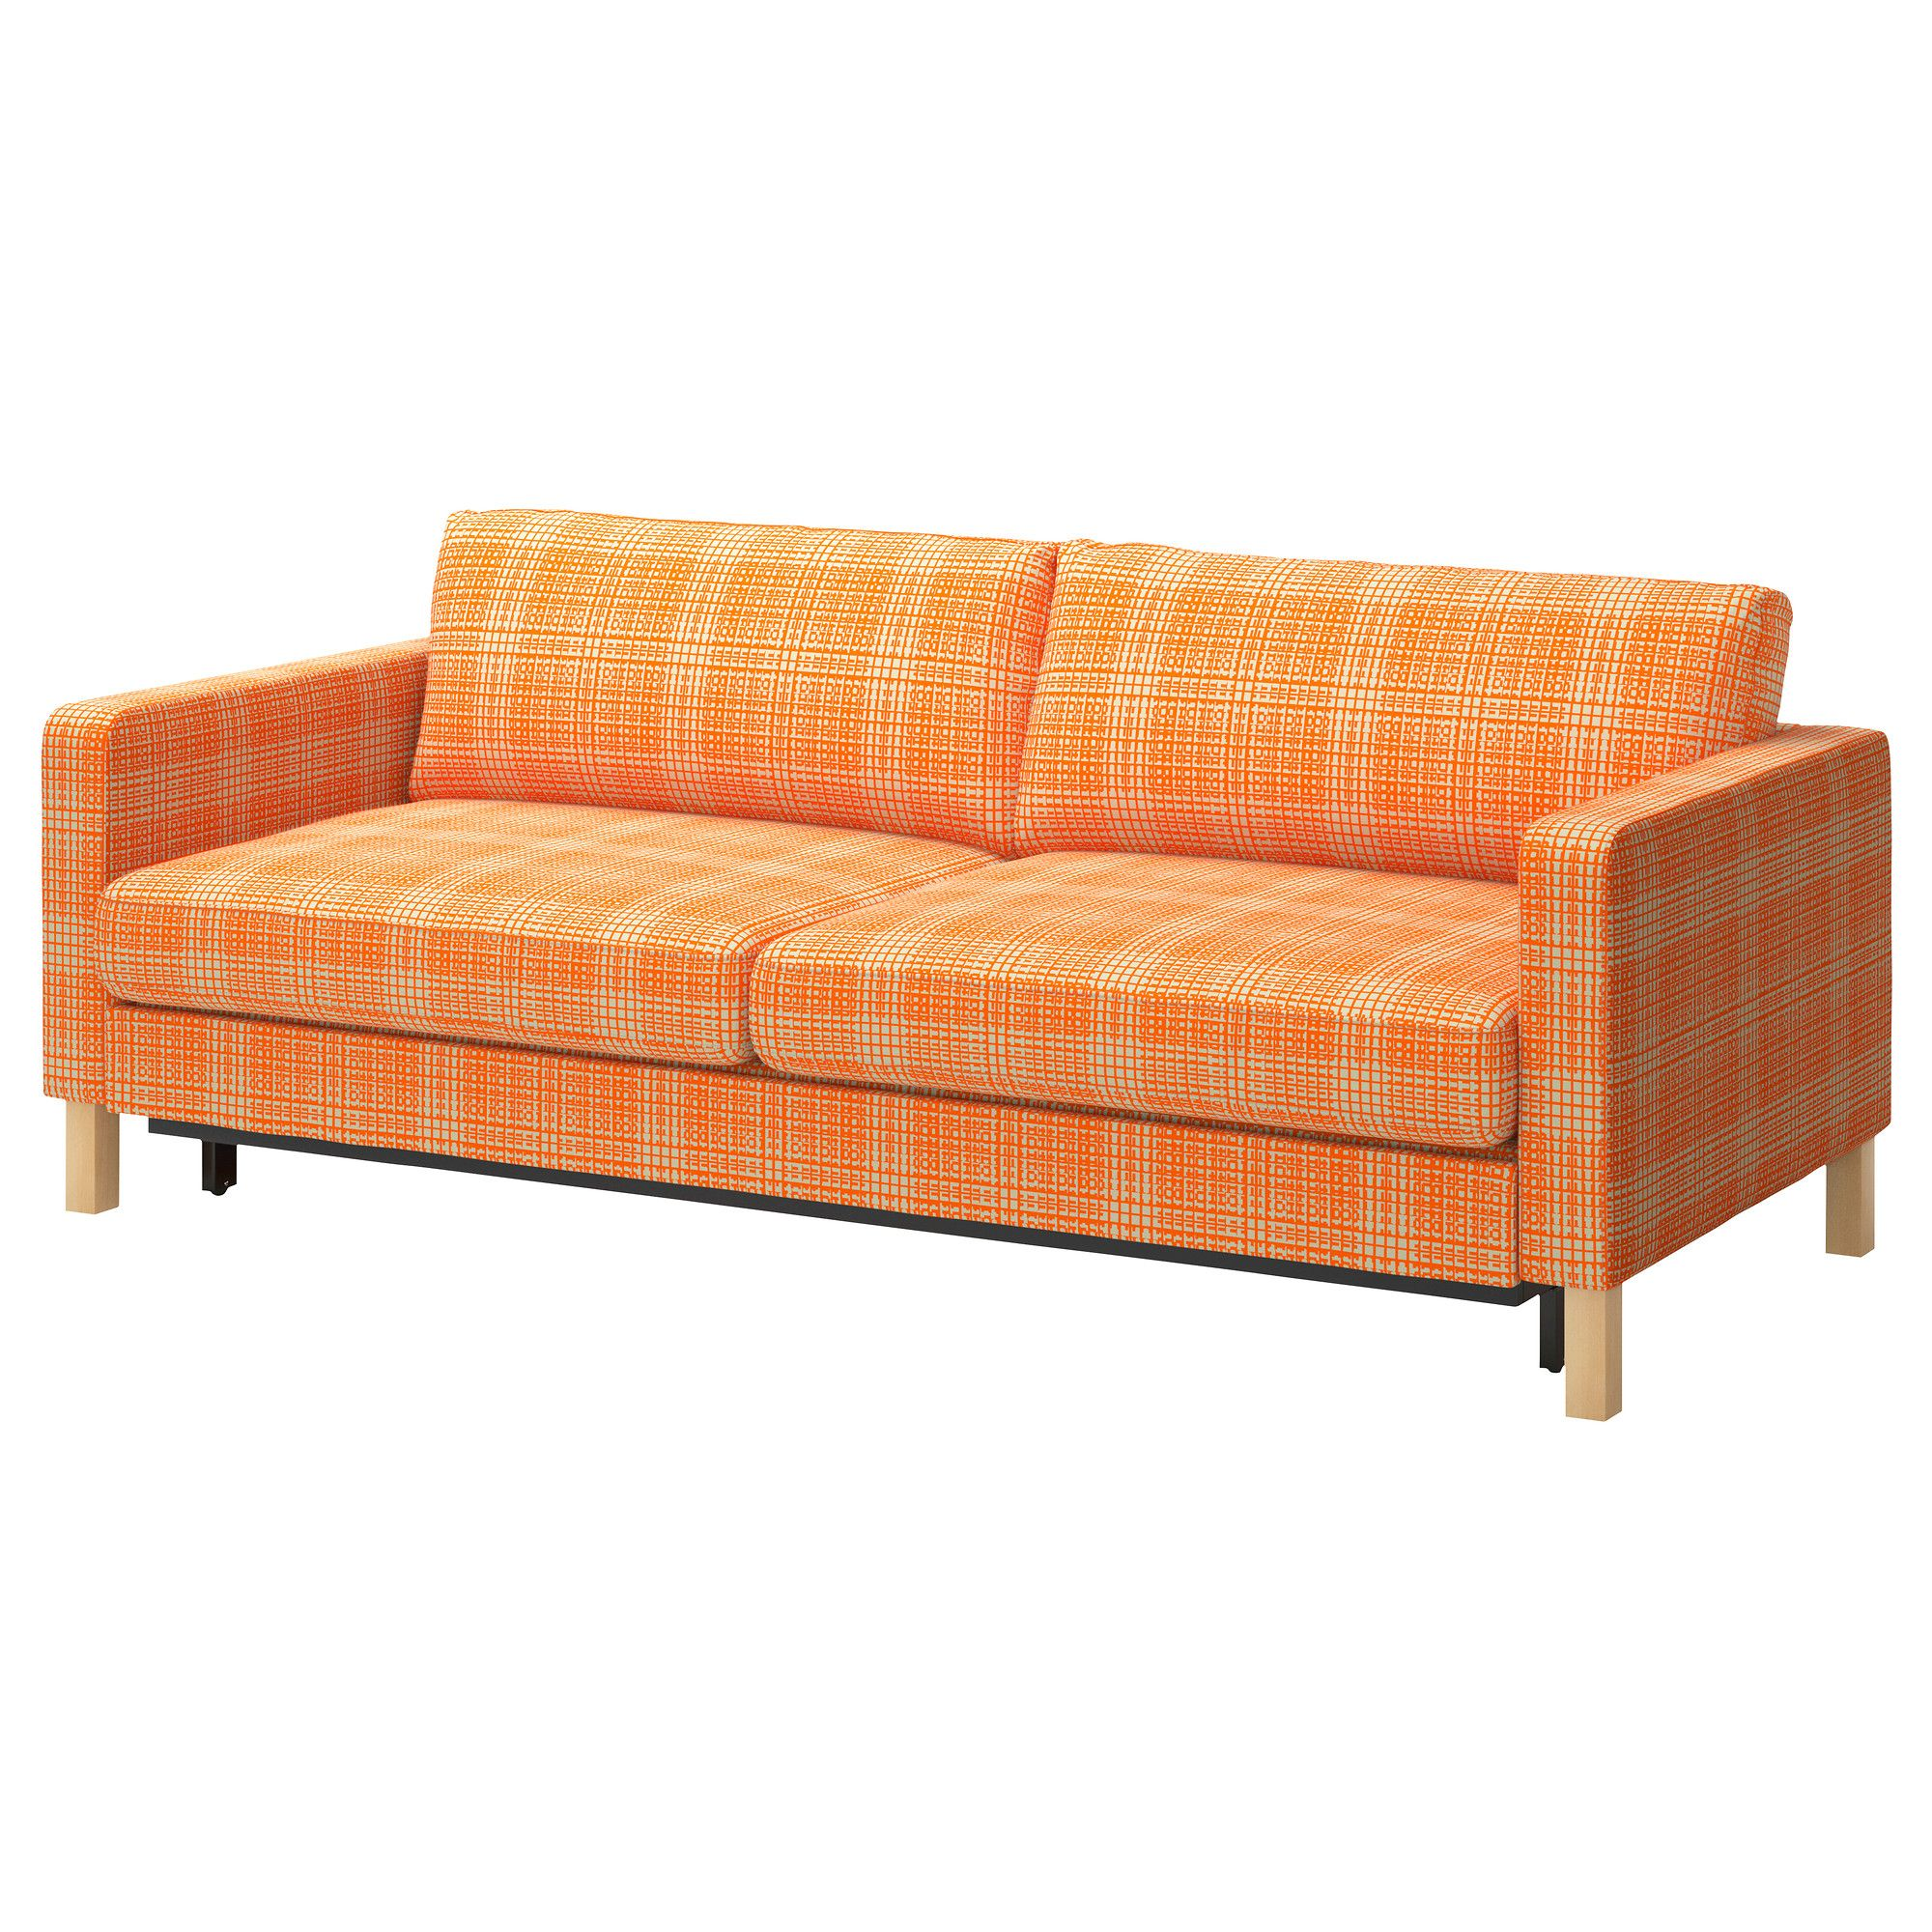 orange ikea sofa knopparp 2 seat sofa orange ikea thesofa. Black Bedroom Furniture Sets. Home Design Ideas